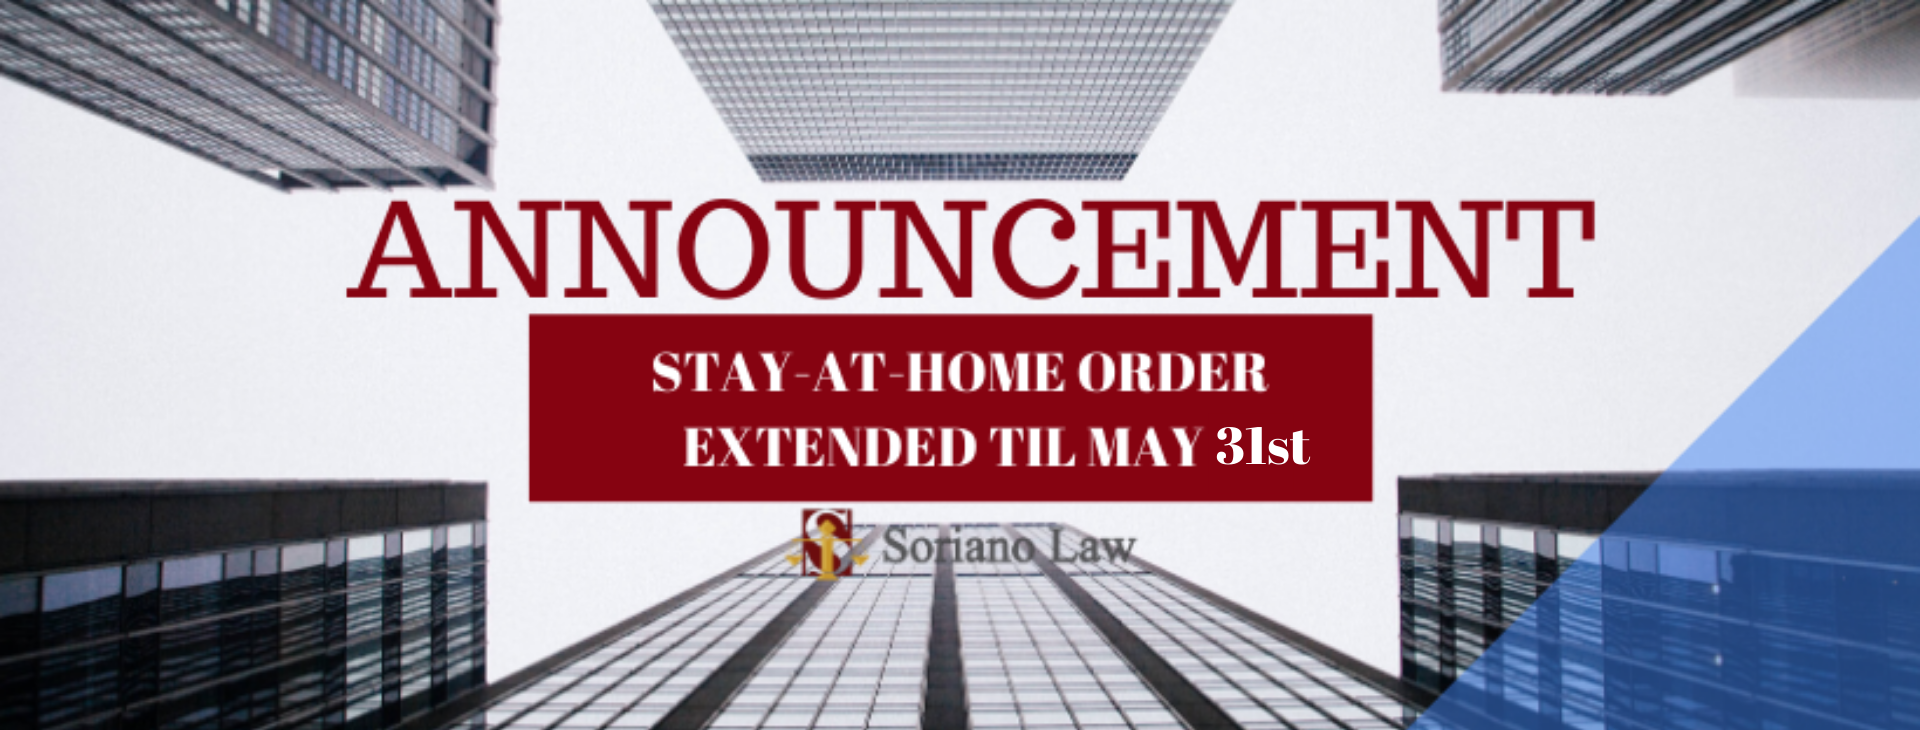 ANNOUNCEMENT ON STAY-AT-HOME ORDER